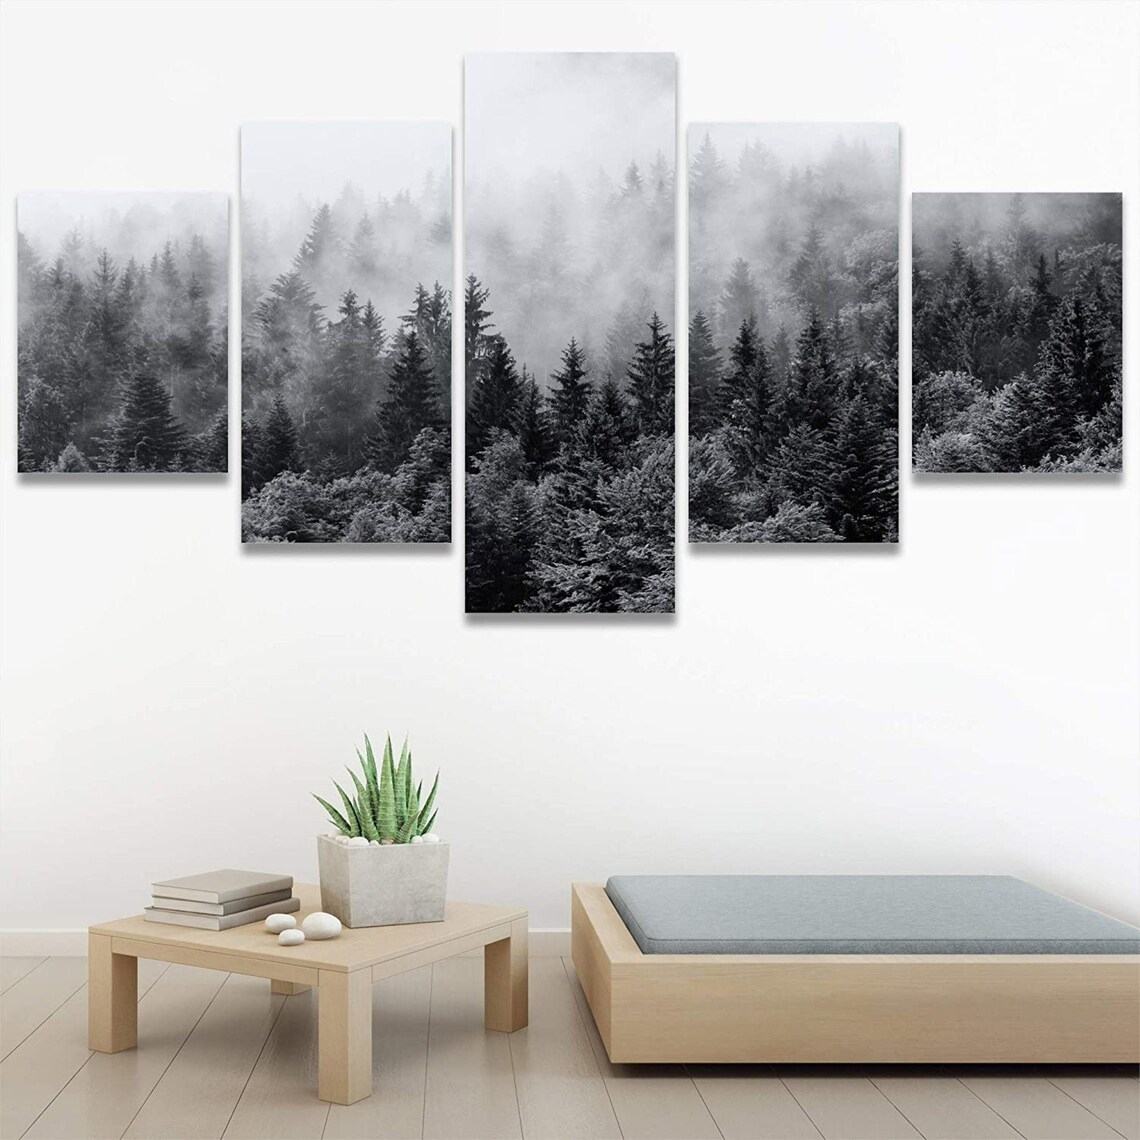 Forest in smog 5 piece wall art canvas